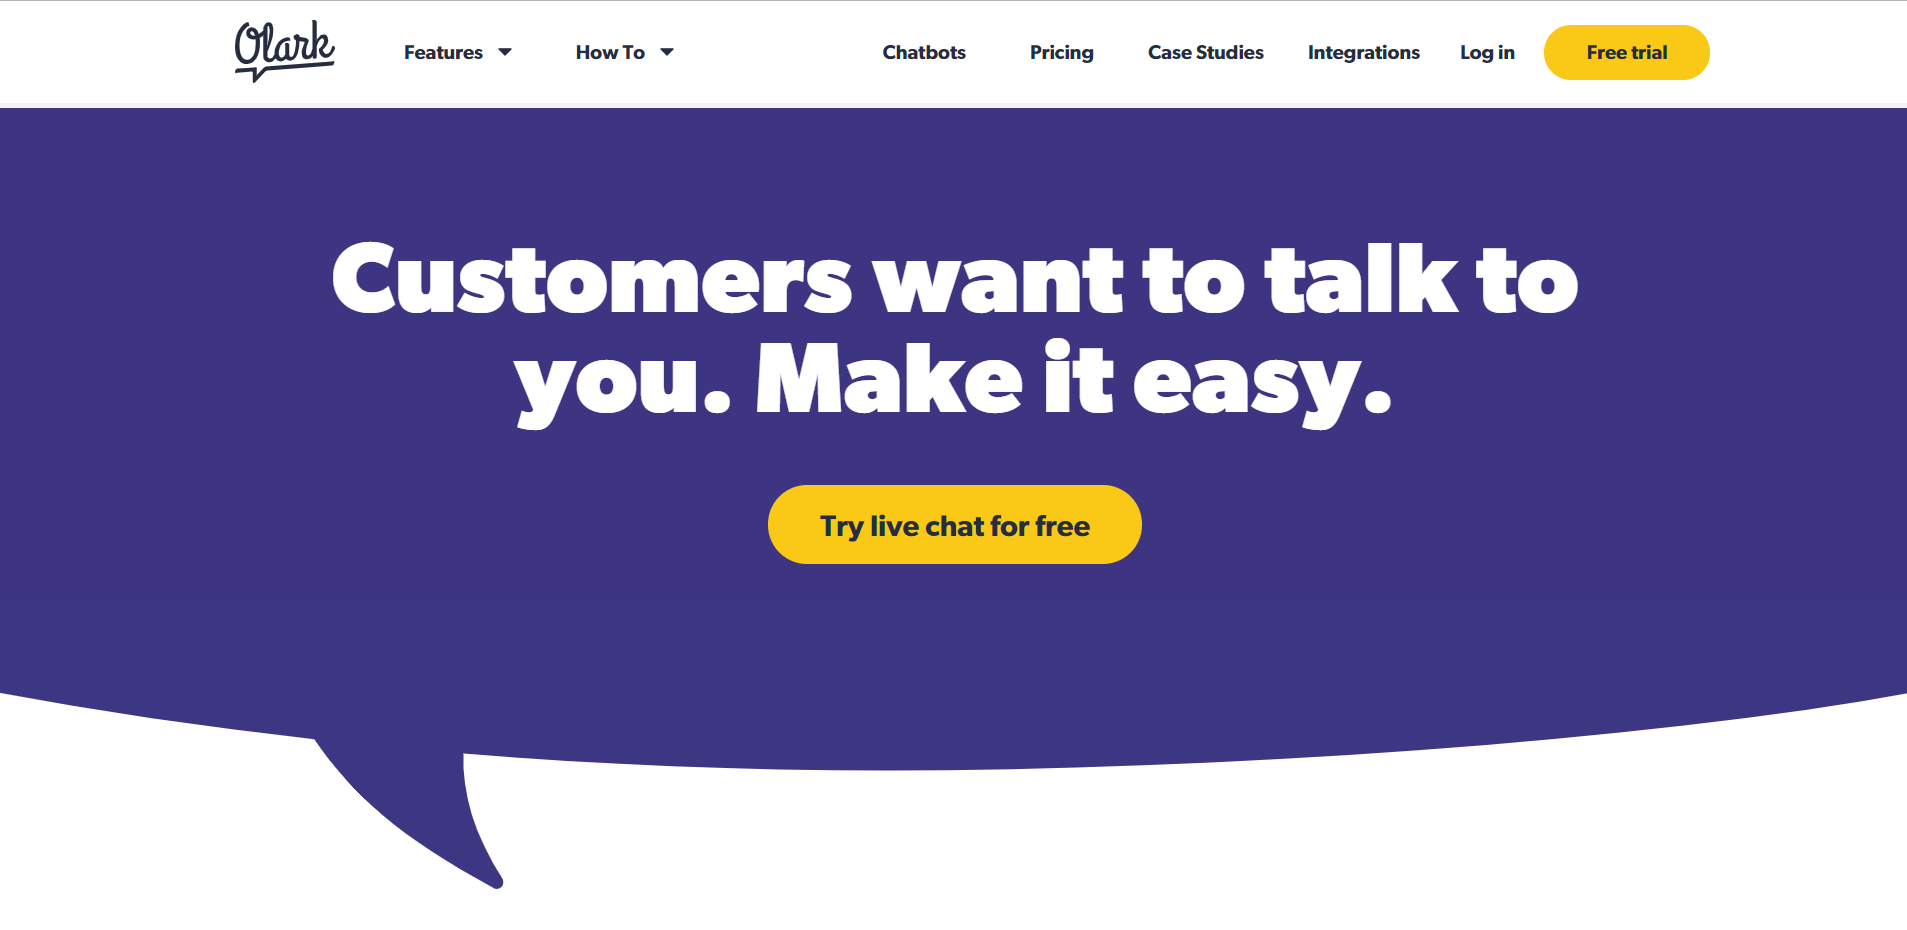 olark chat- chat with customer